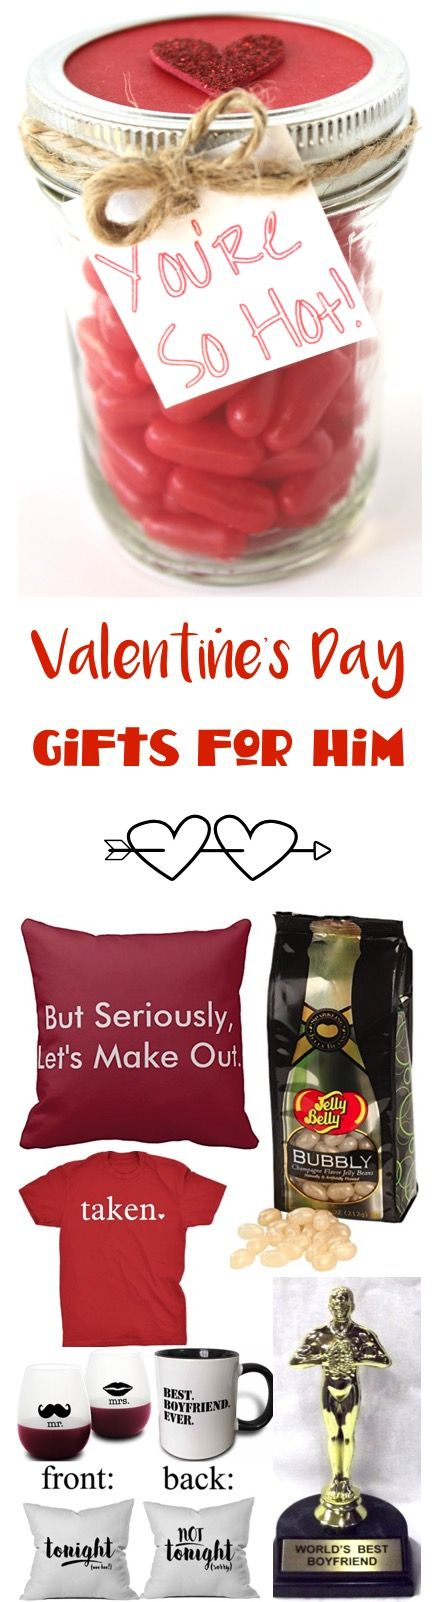 17 Best images about Valentine's Day Gift Ideas for Him & Her on ...